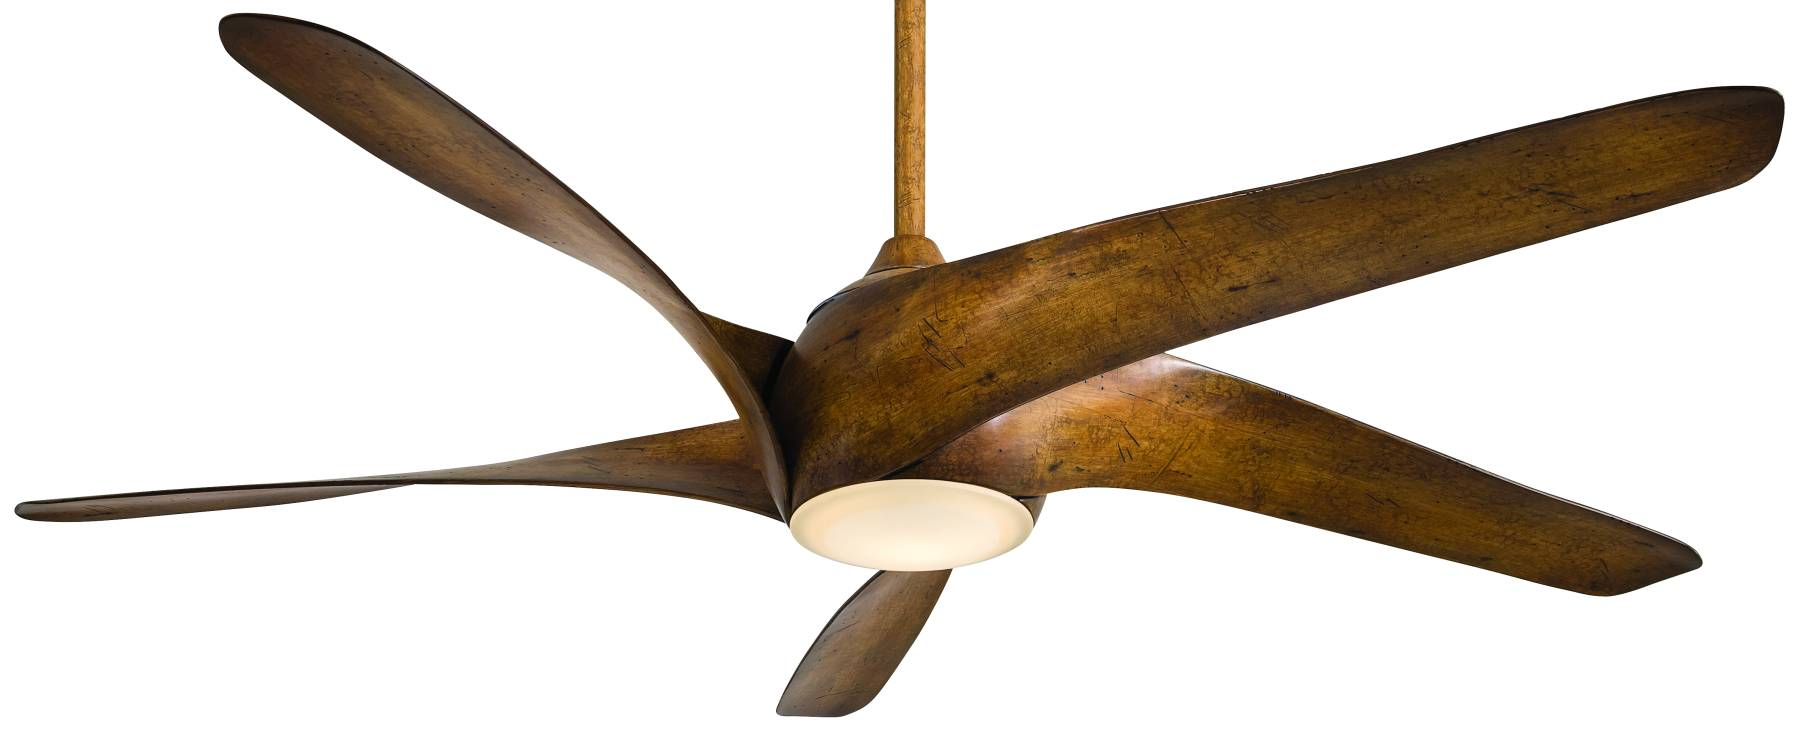 no light ceiling fan photo 1 - Ceiling Fans